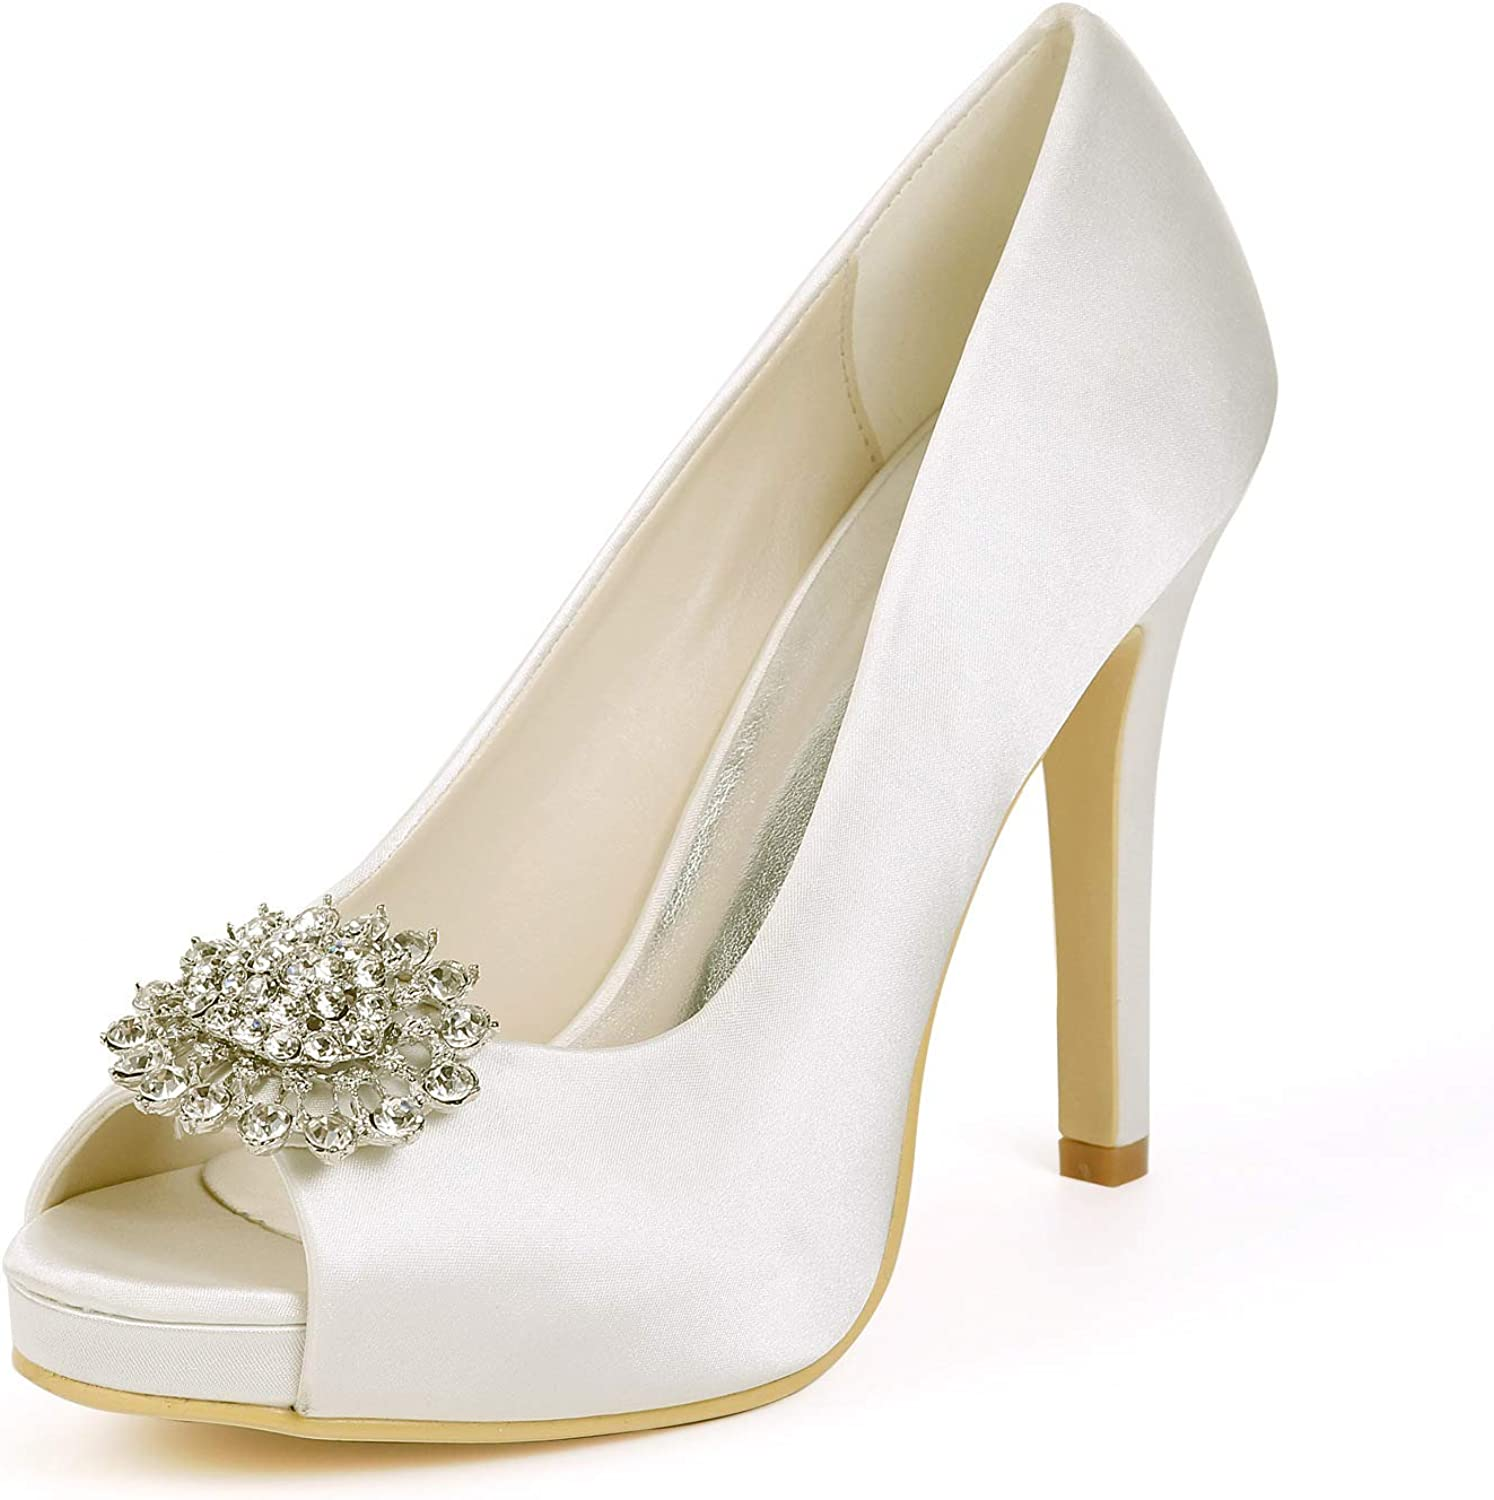 CCBubble Peep Toe Heels Bridal shoes for Wedding Satin Crystal Women Formal Party Pumps